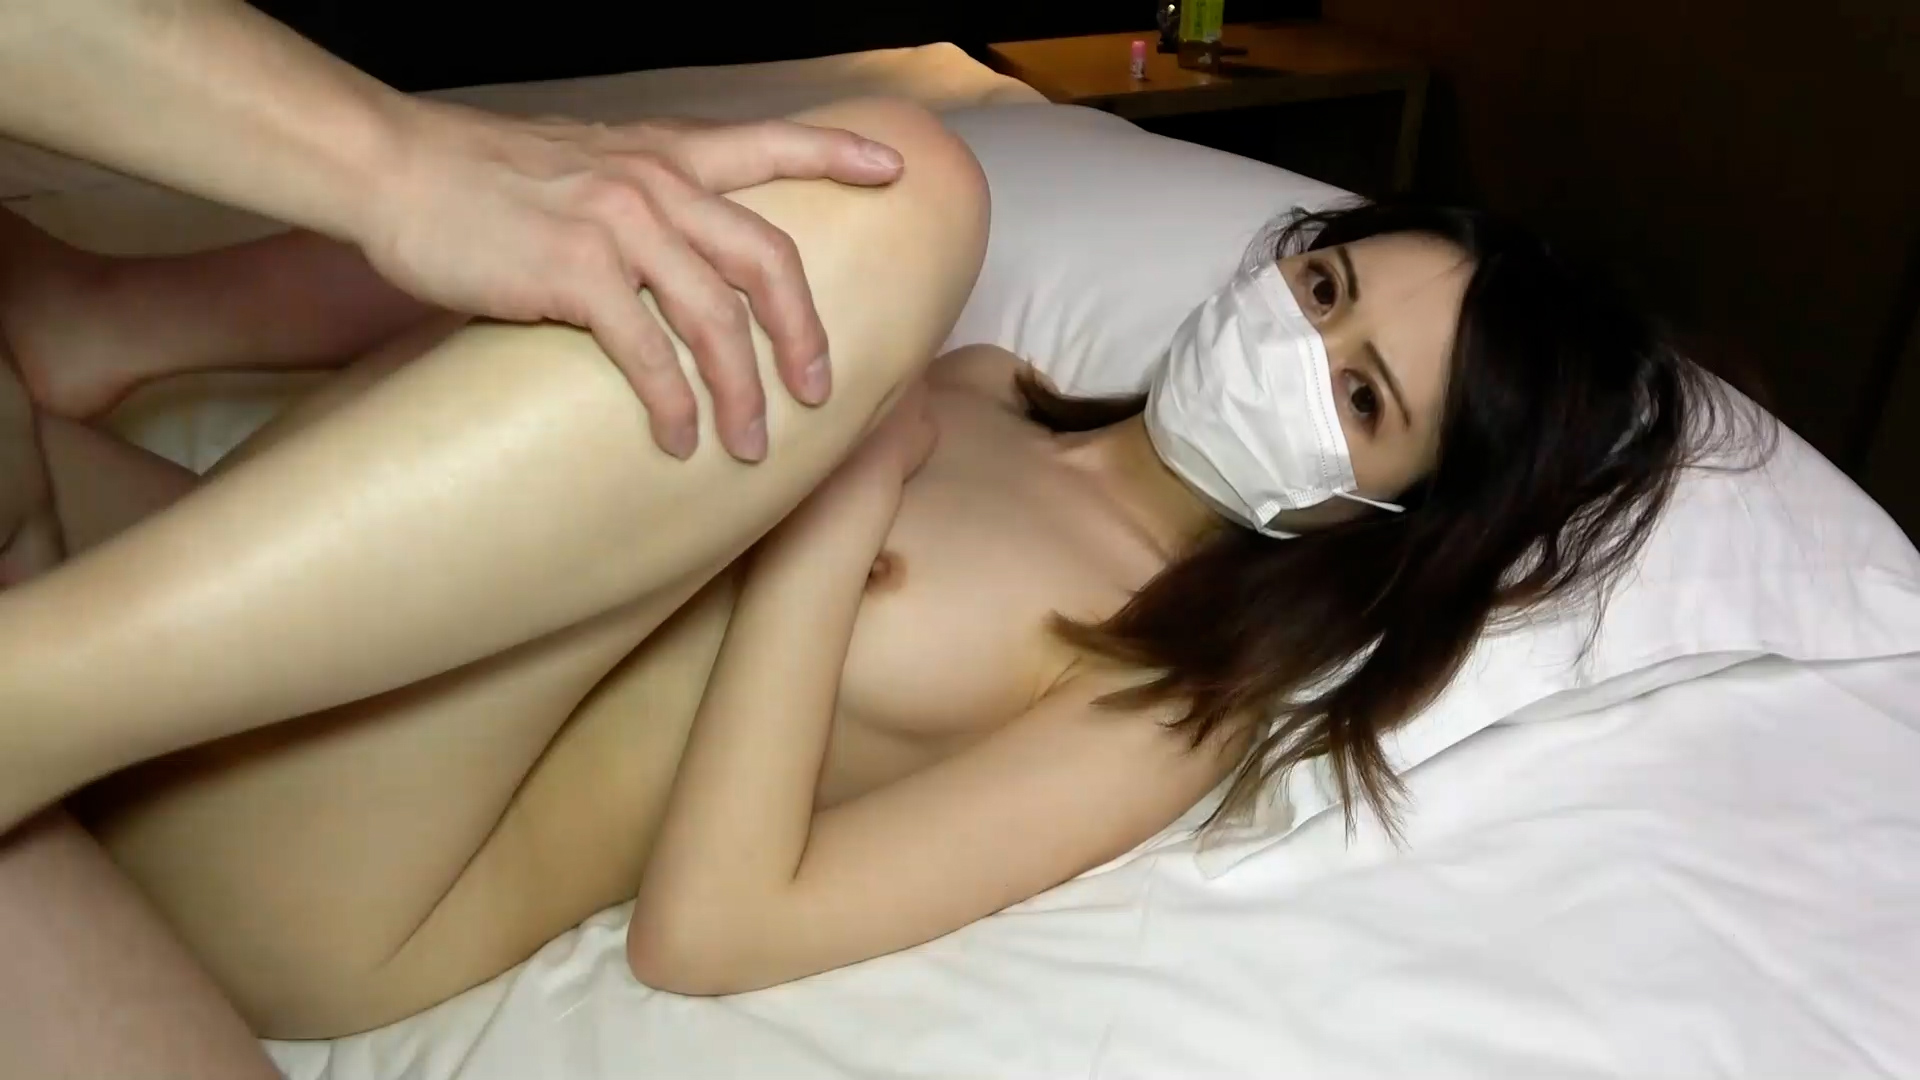 FC2-PPV 1872214 Dirty Sex That Does Not Stop Sexual Desire